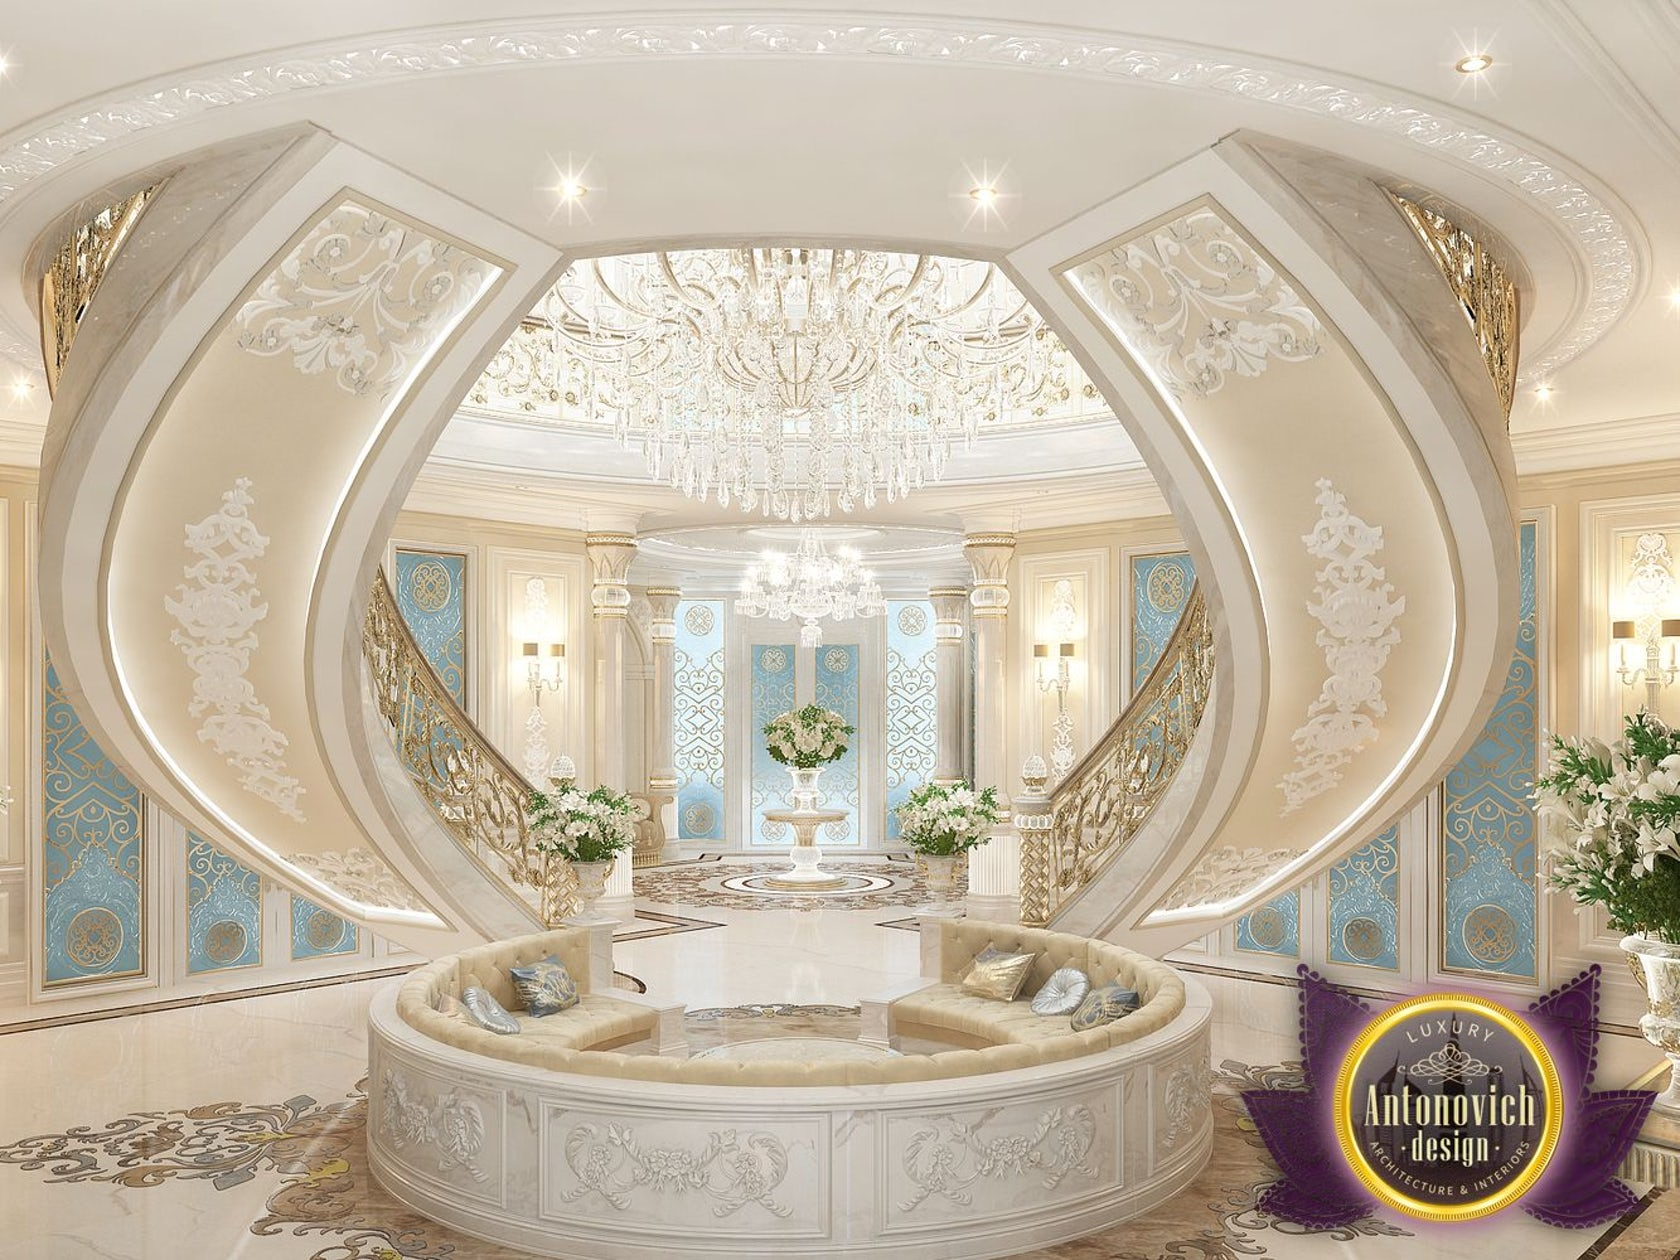 Beautiful dressing room design in dubai by luxury antonovich design - Beautiful Dressing Room Design In Dubai By Luxury Antonovich Design 32